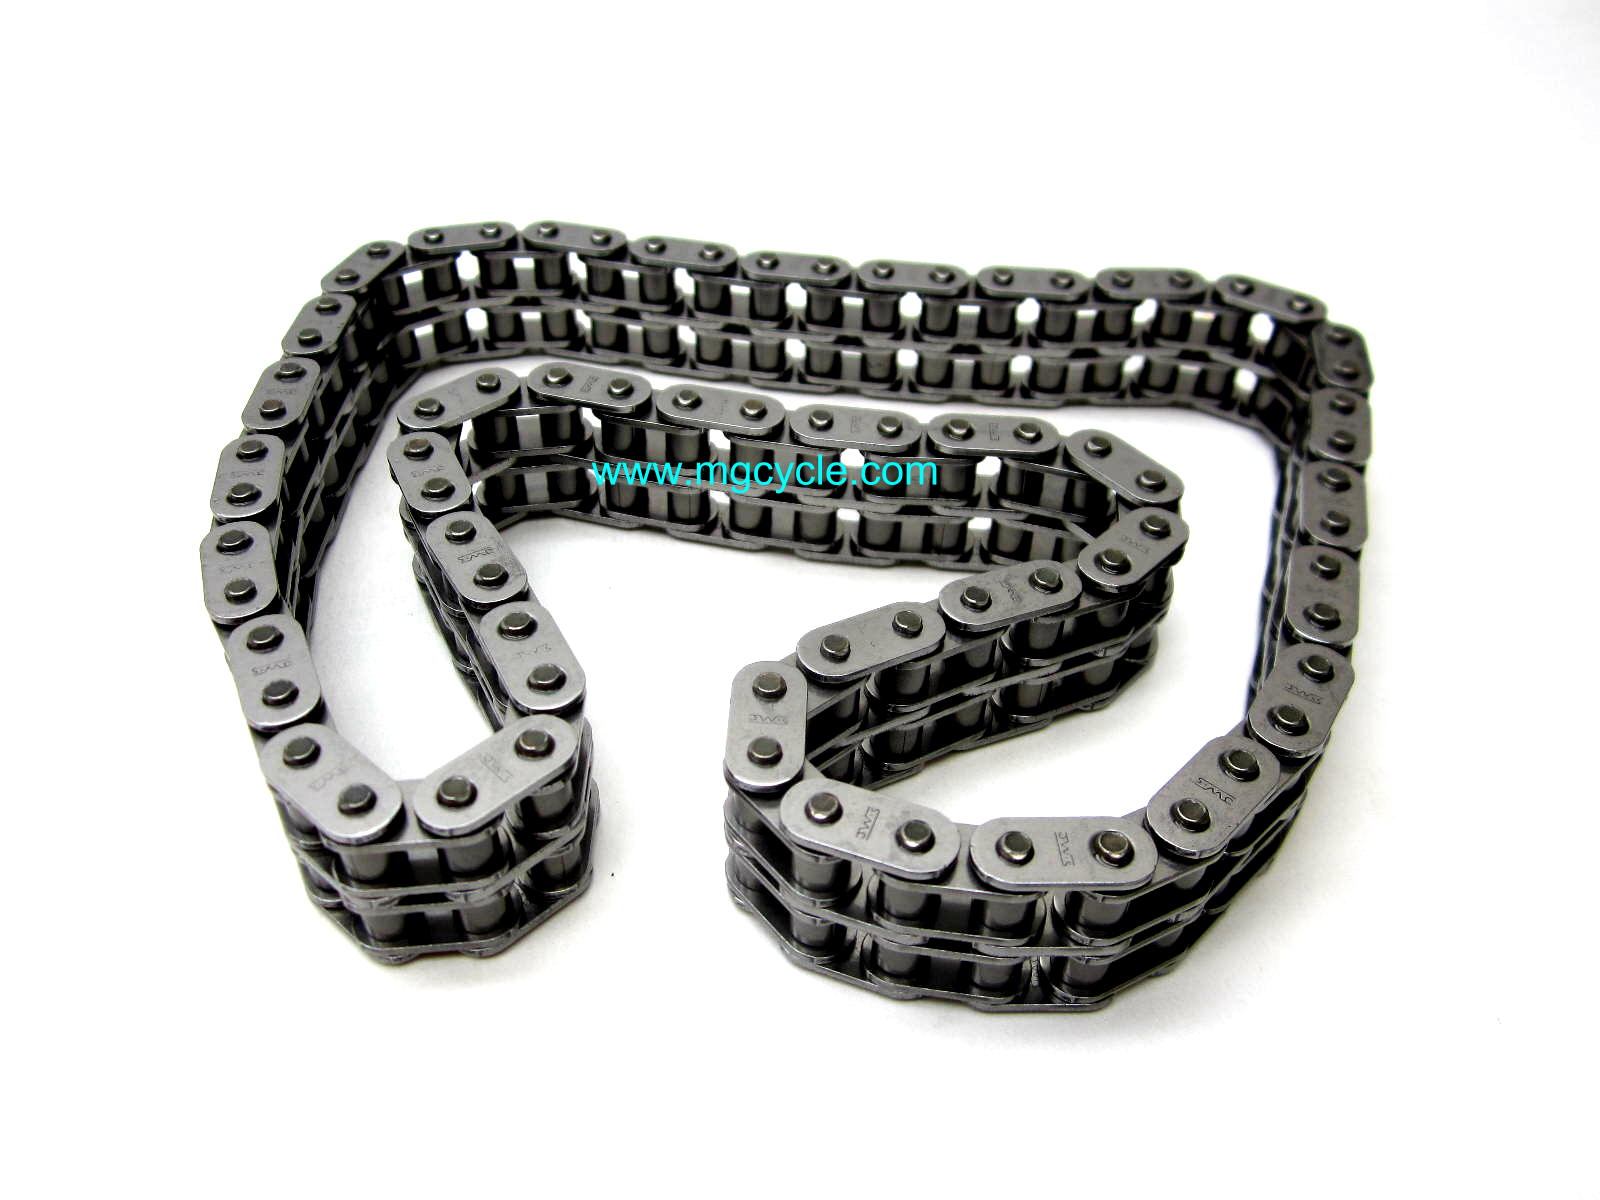 One piece no master link timing chain 750/850/1000/1100 some1200